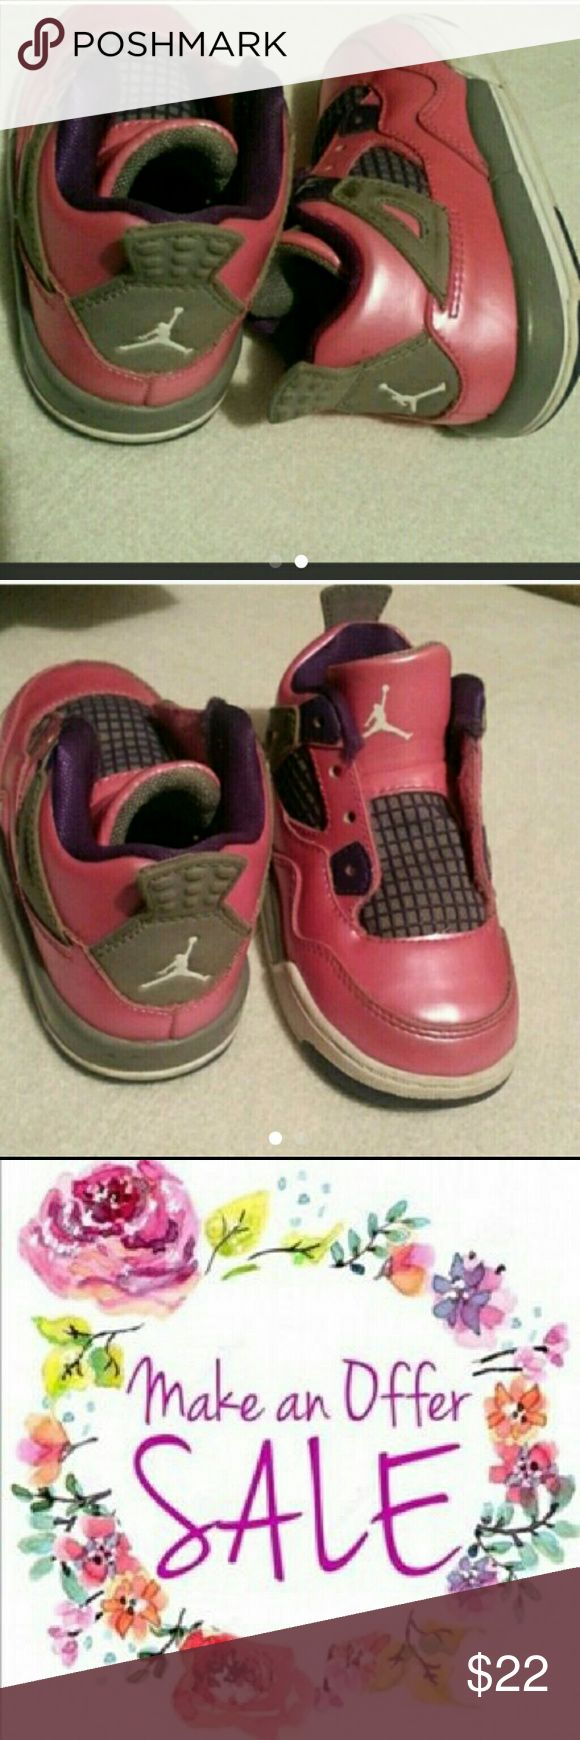 Pink and white Jordans size 6 toddler Good condition#BUNDLE  and  save# CLEARING  OUT # CLOSETCLEANOUT2016 #FREE  shipping Nike Shoes Baby & Walker